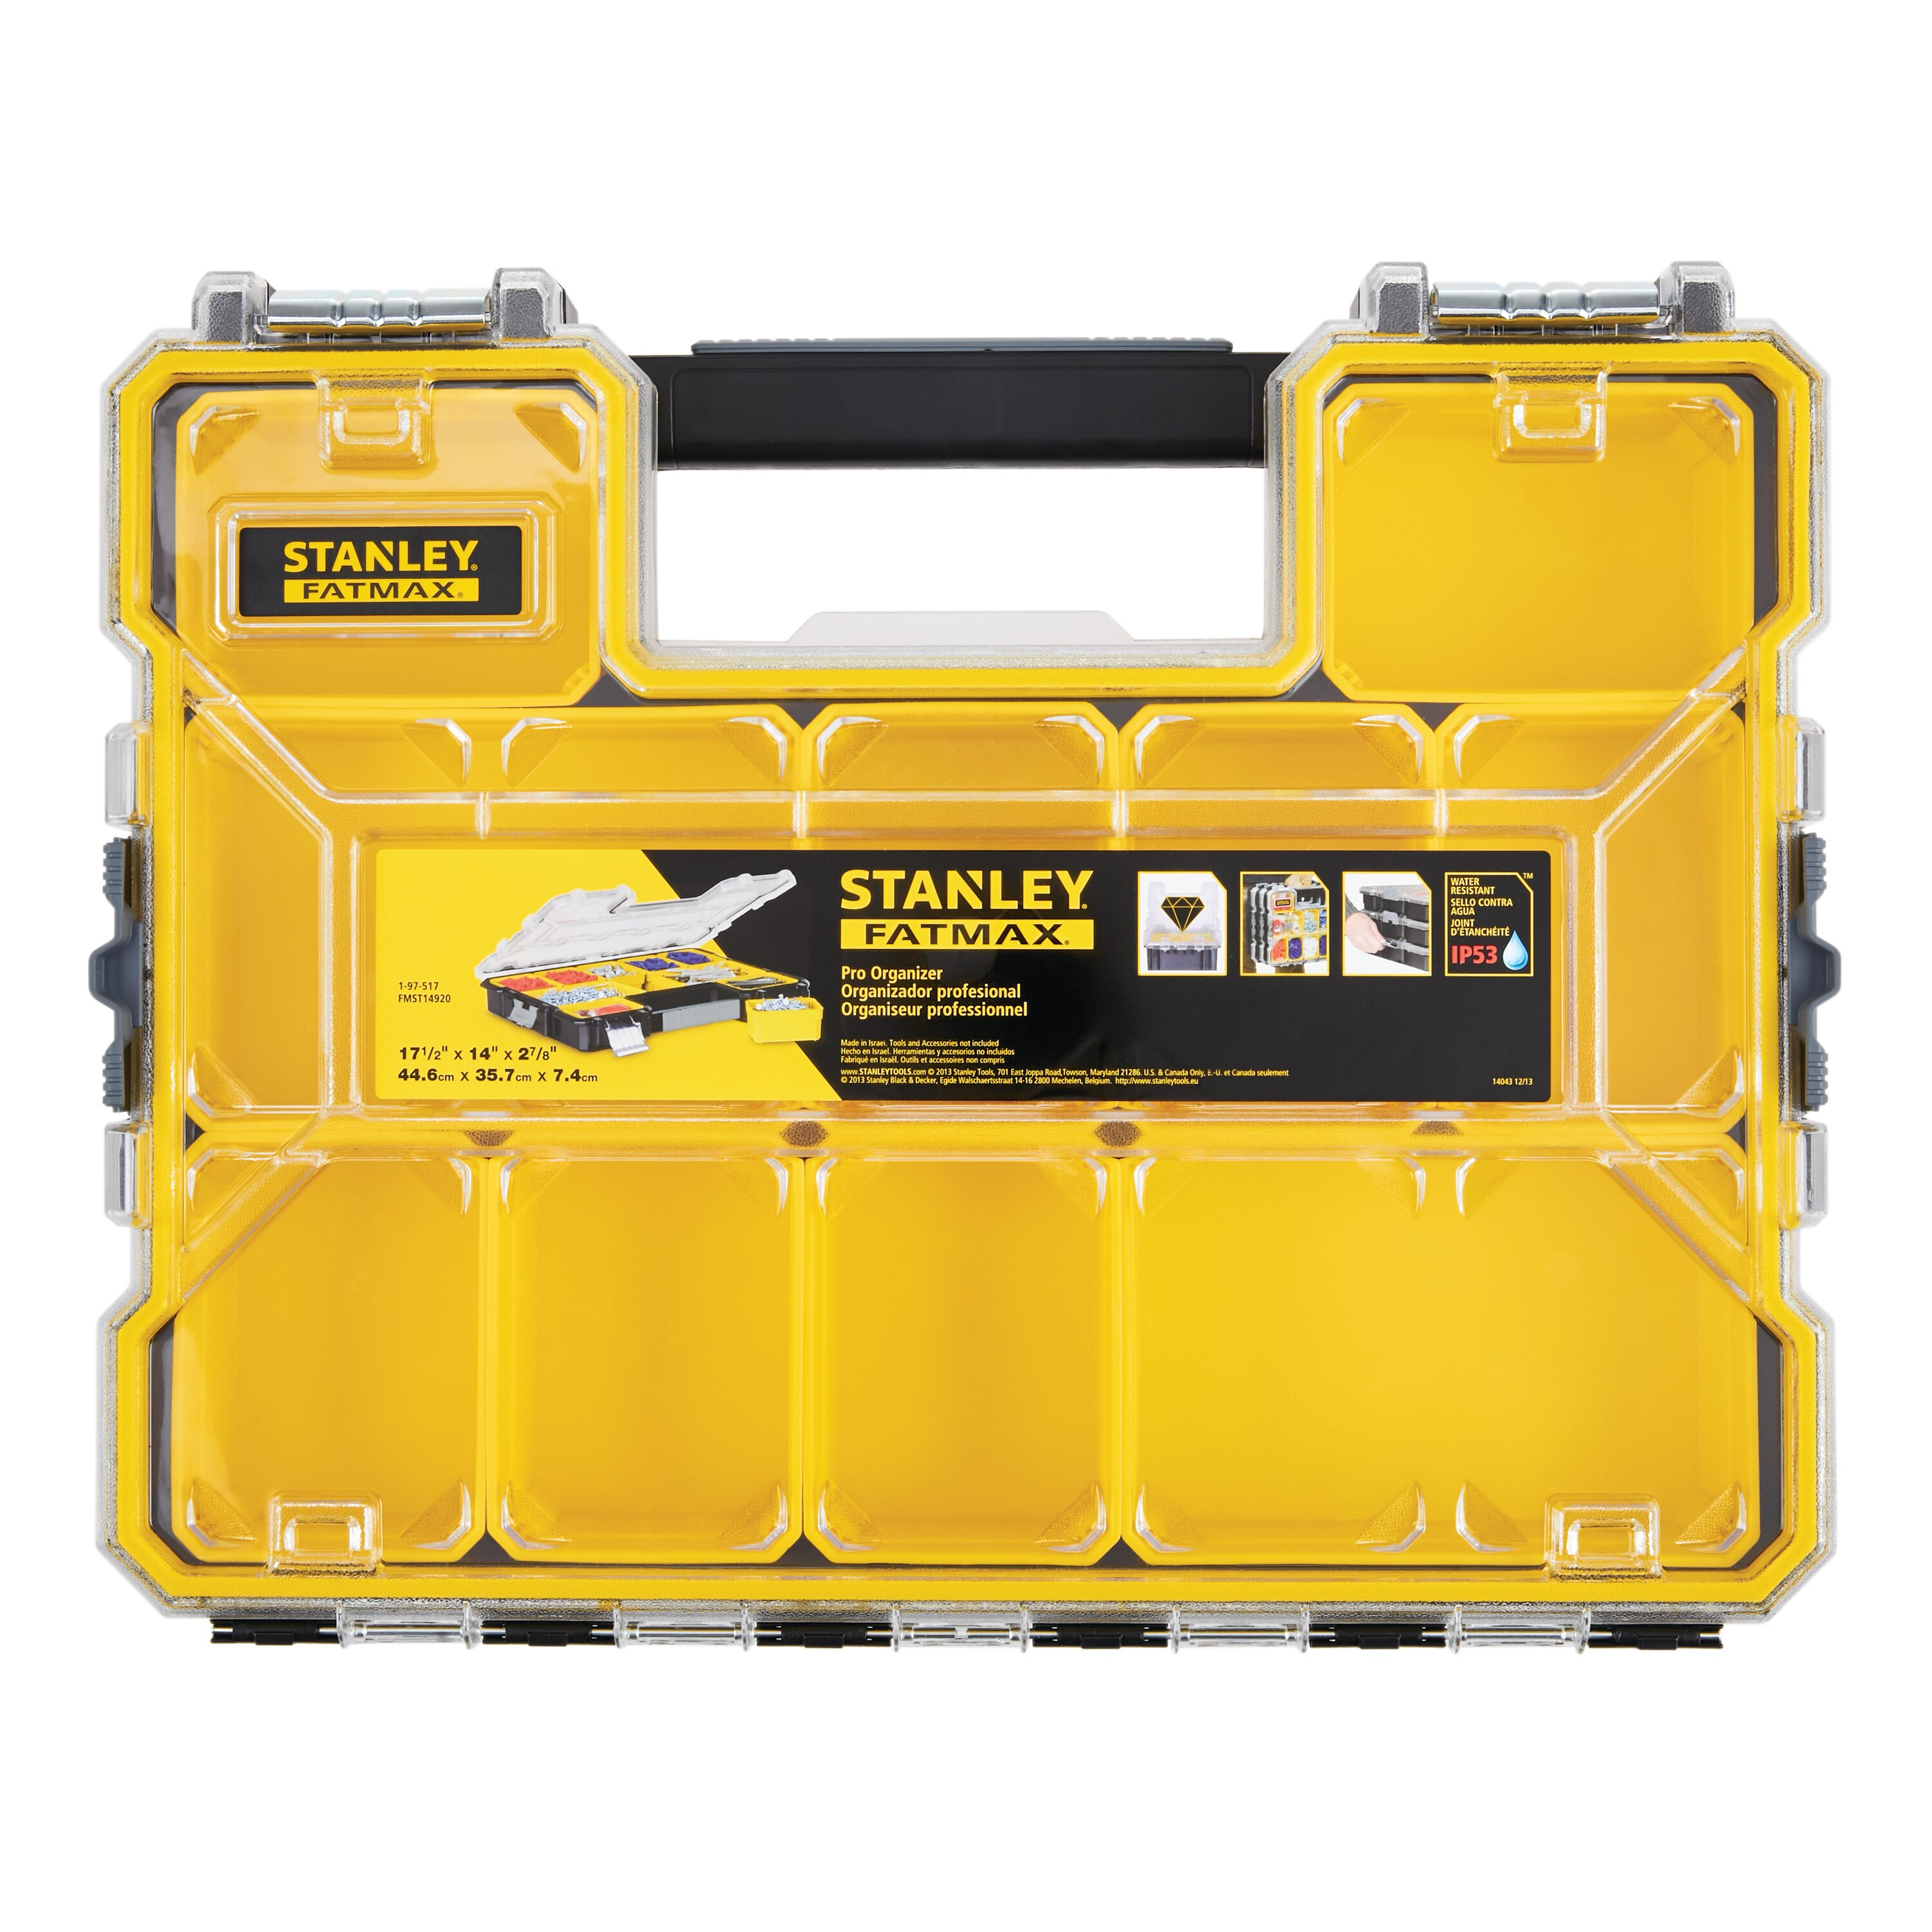 Stanley Tools - FATMAX Shallow Pro Organizer - FMST14920